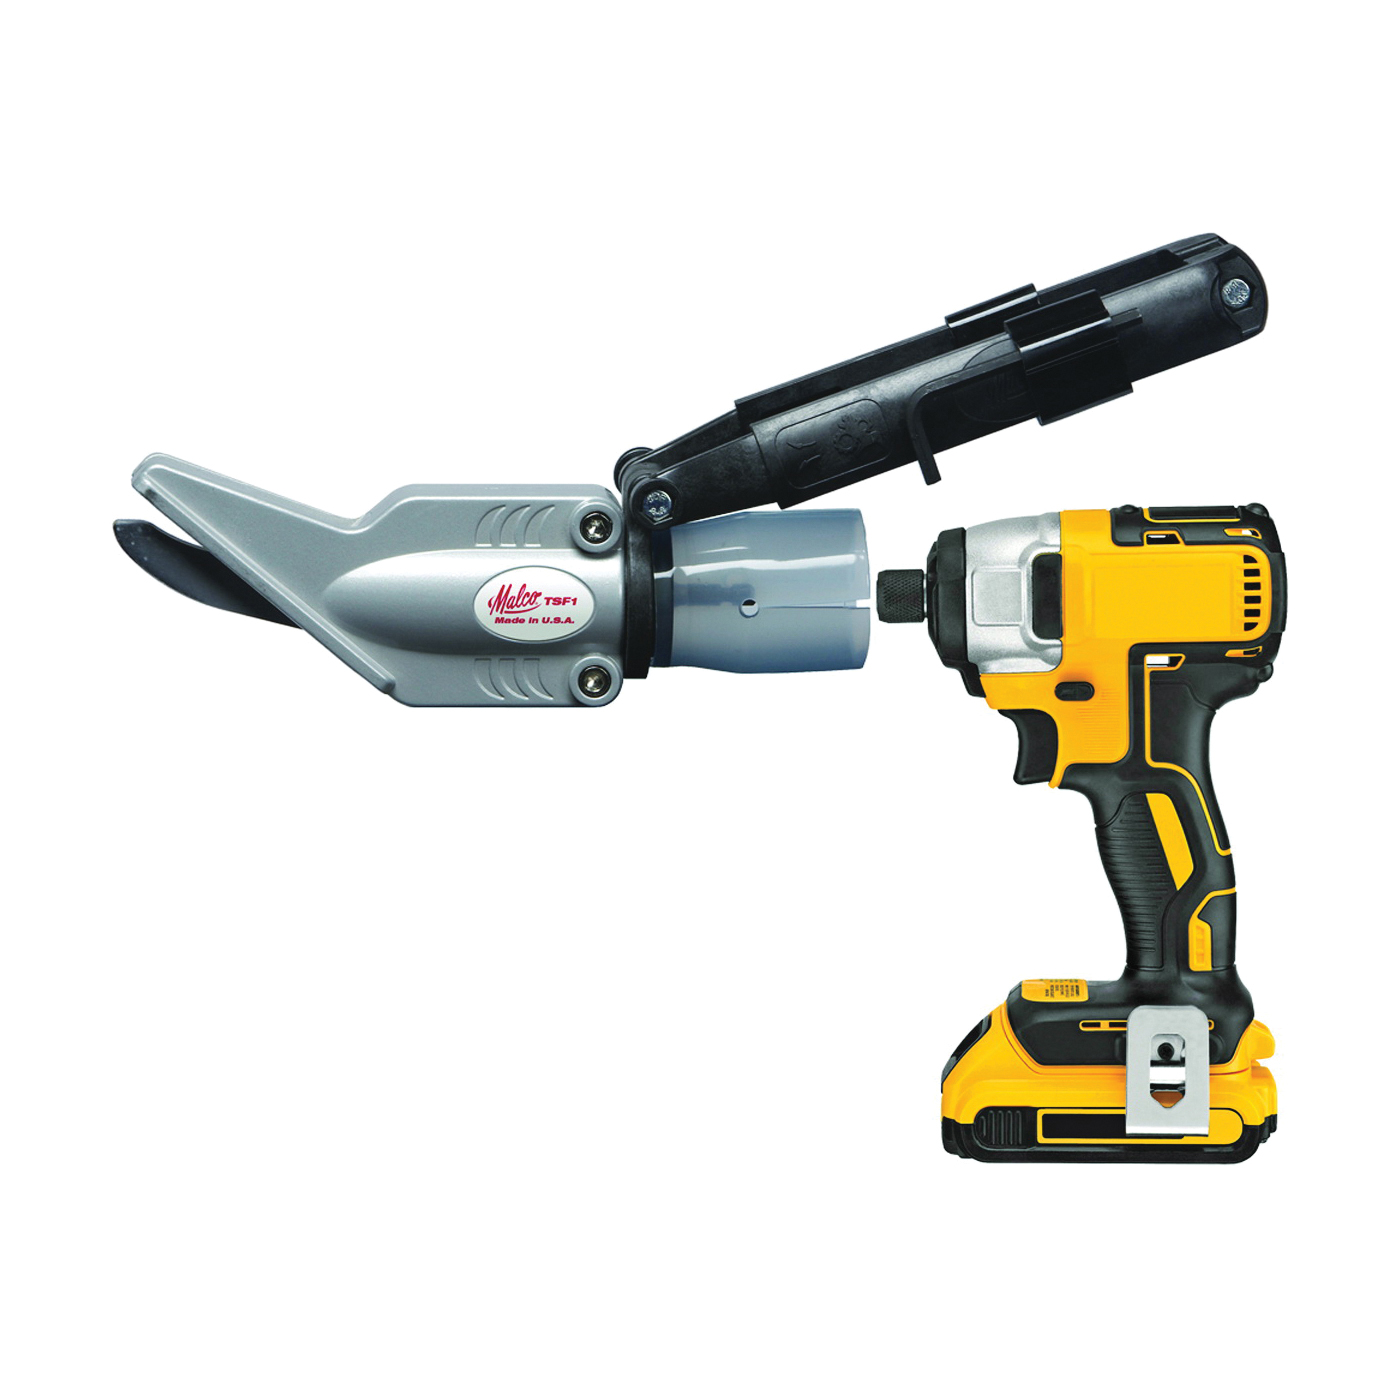 Picture of Malco TSF1 Siding Shear Attachment, Steel, For: 14.4 V or Larger Cordless or Standard A/C Power Drills